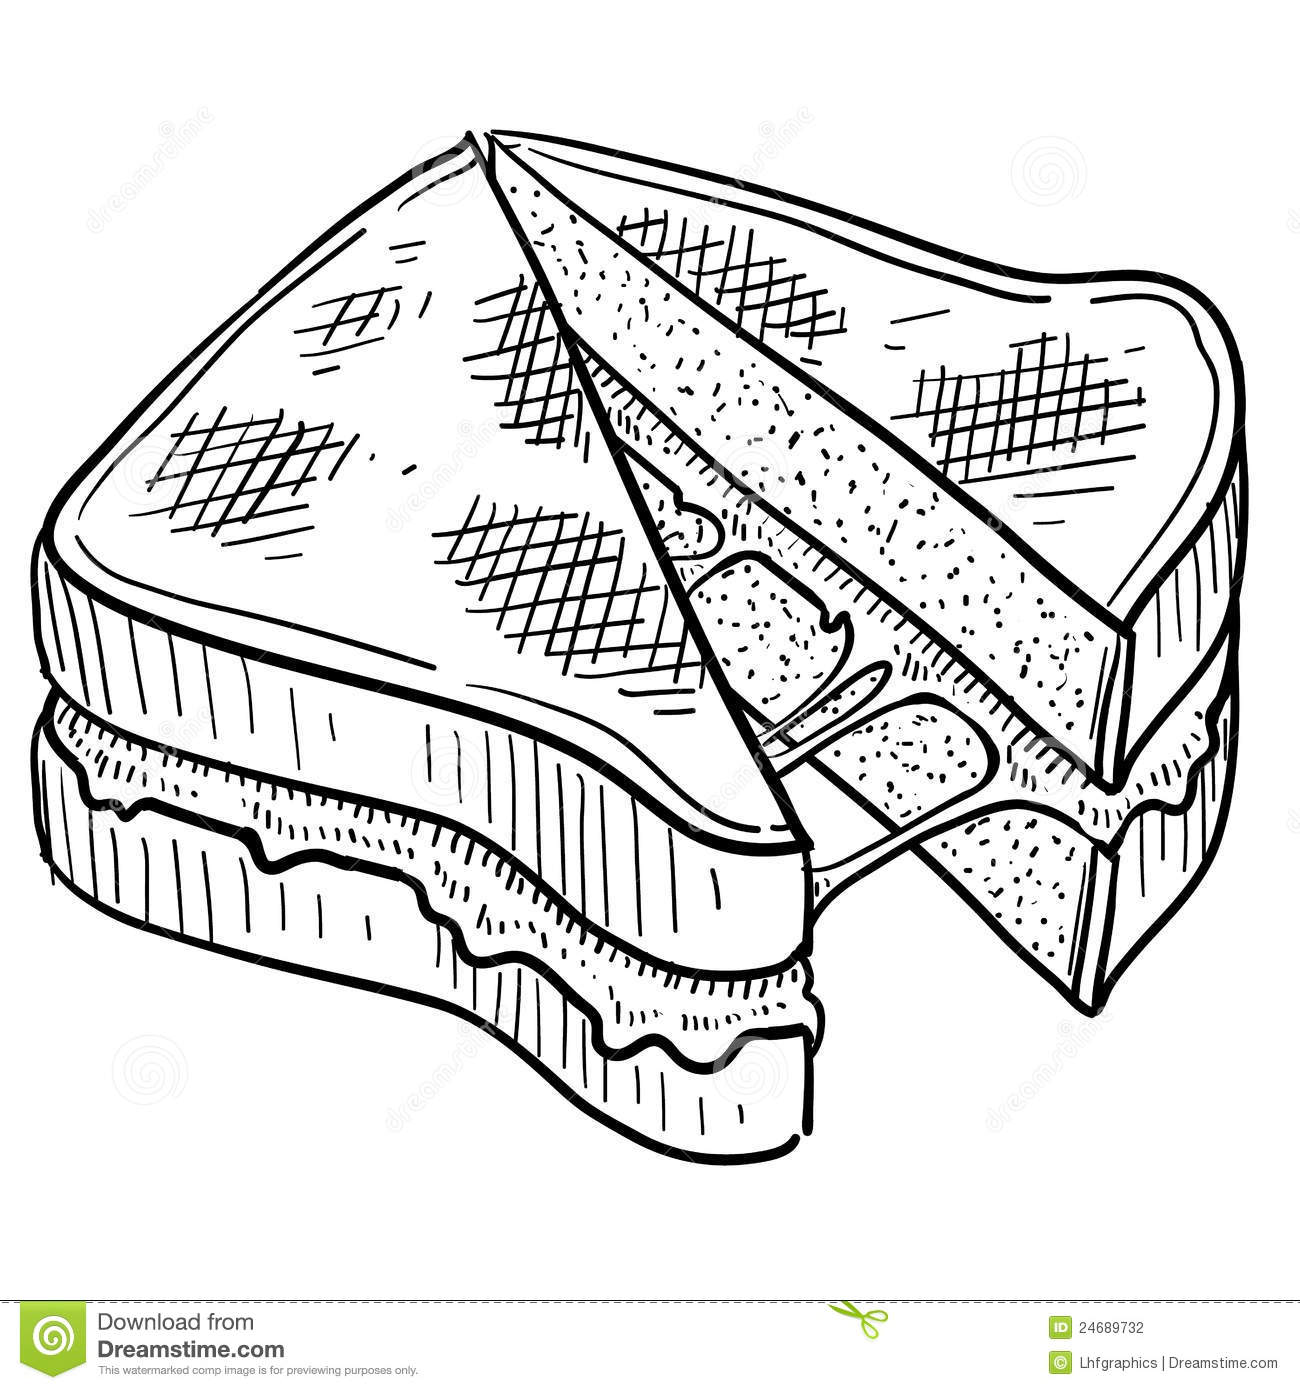 cheese coloring pages - grilled cheese sandwich sketch stock vector illustration